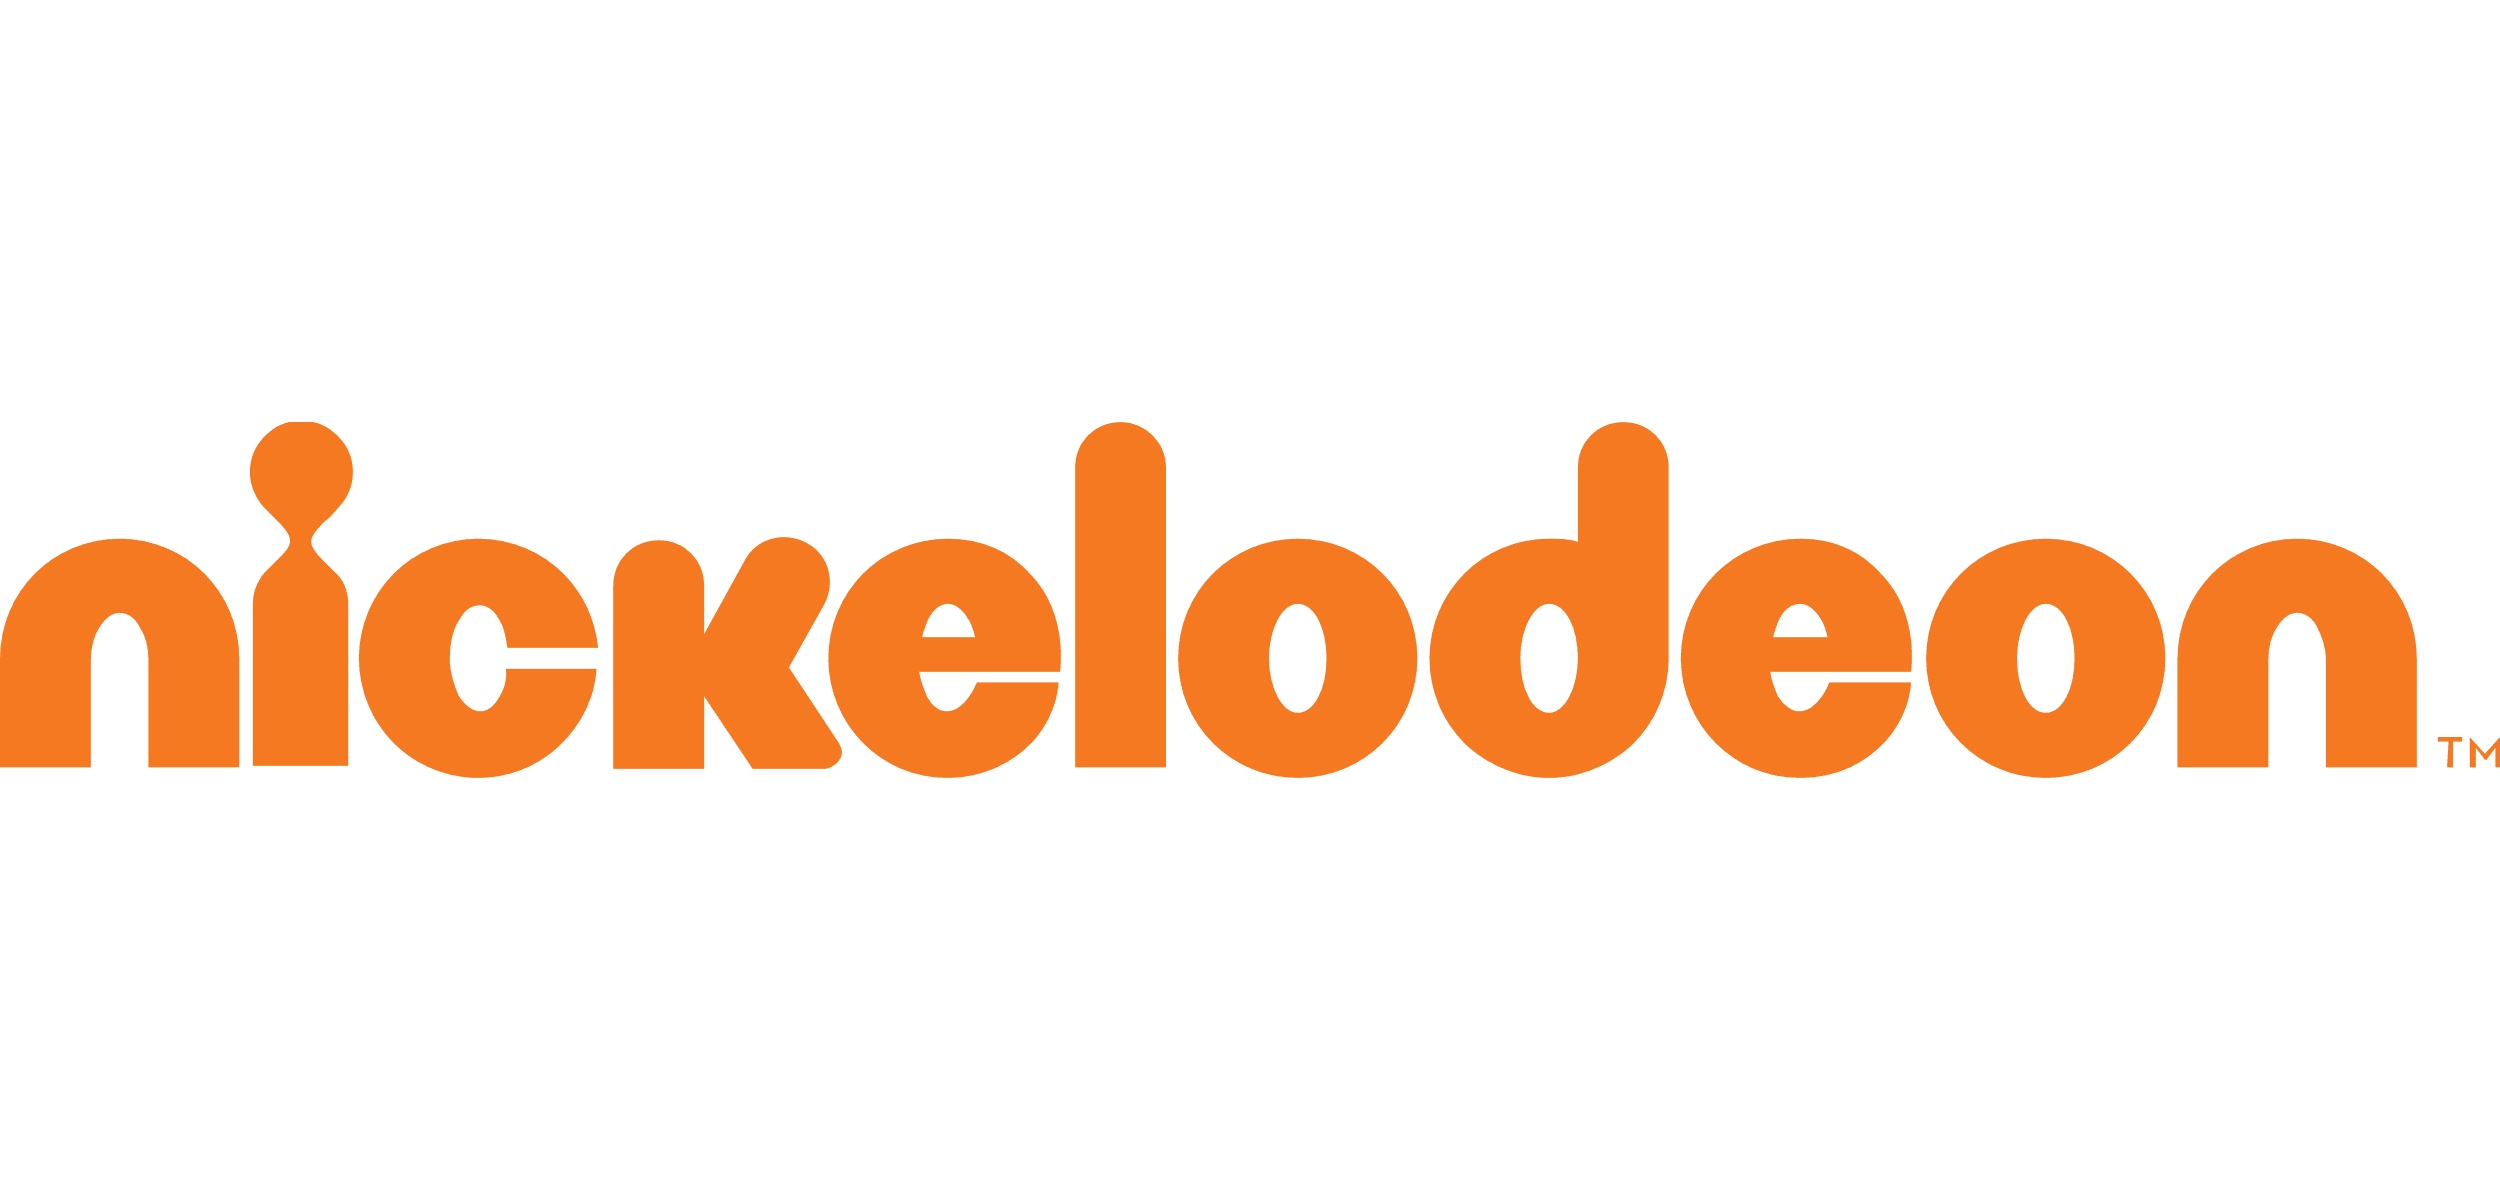 Shop Our Collection of Nickelodeon Merchandise.